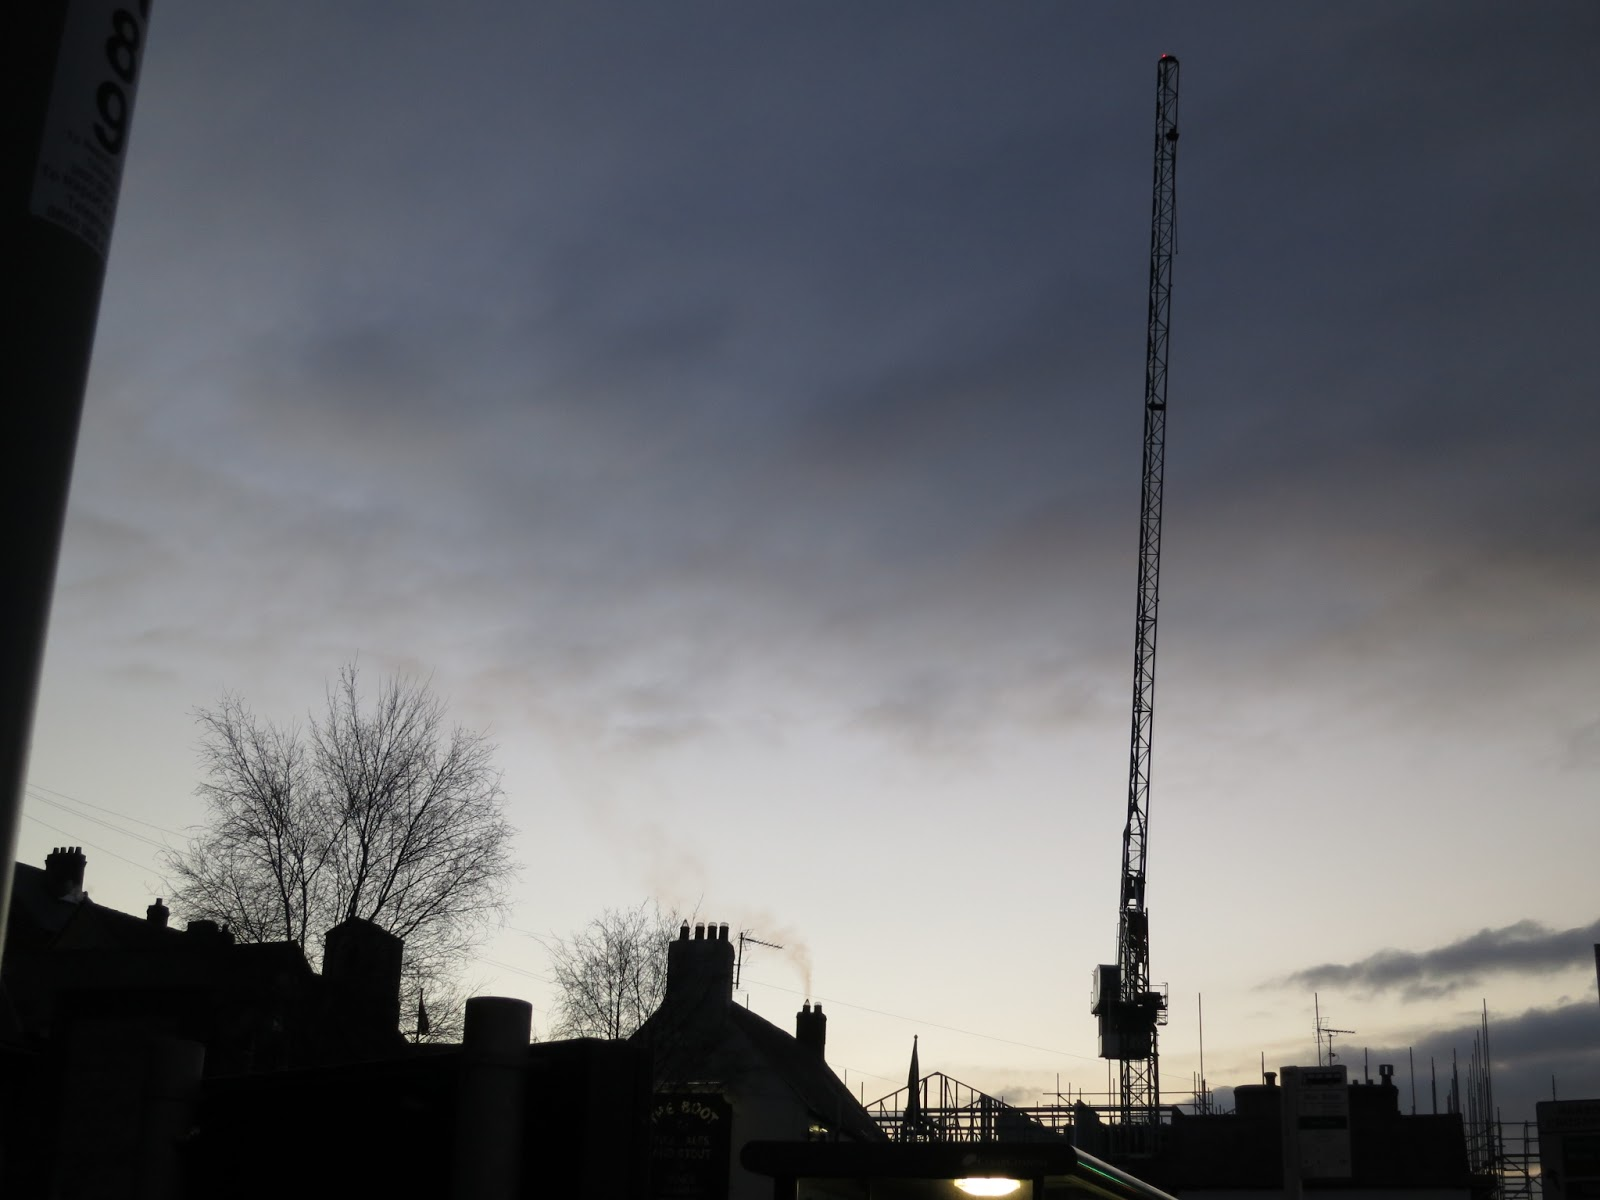 Evening. Silhouettes of crane on building site, smoke from pub chimney and winter trees